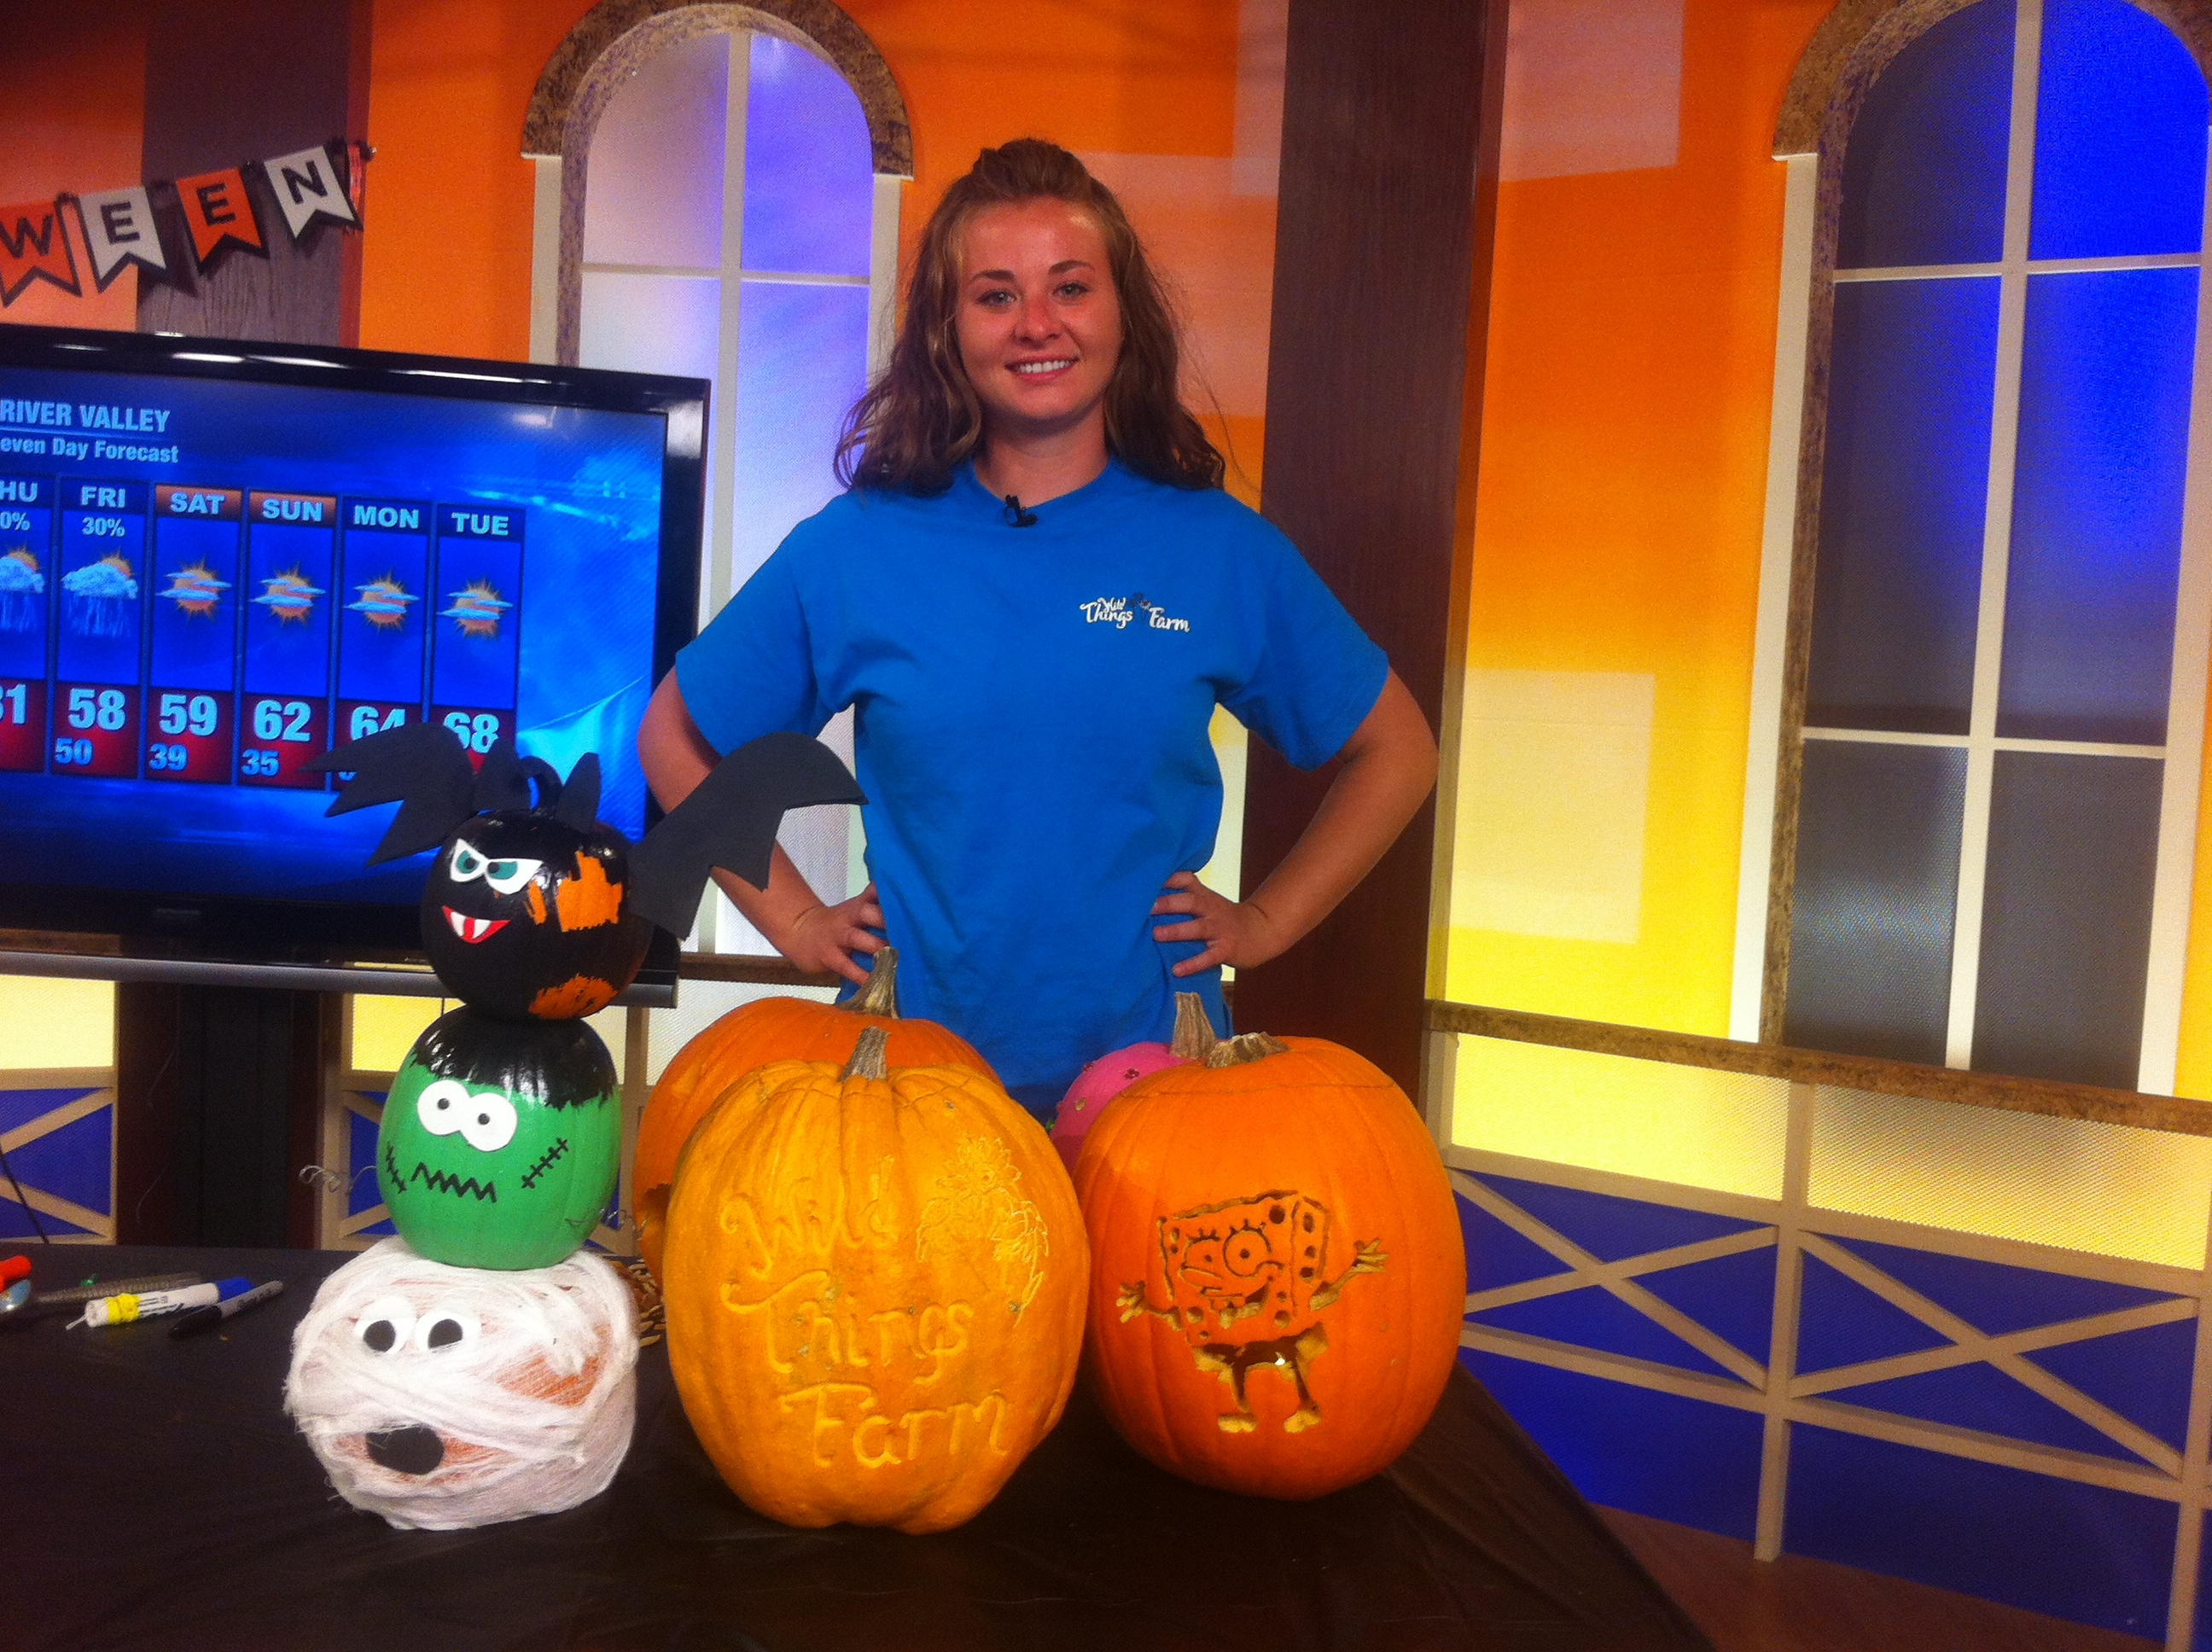 Christy Neu with Wild Things Farm in Pocola shows off her pumpkins.